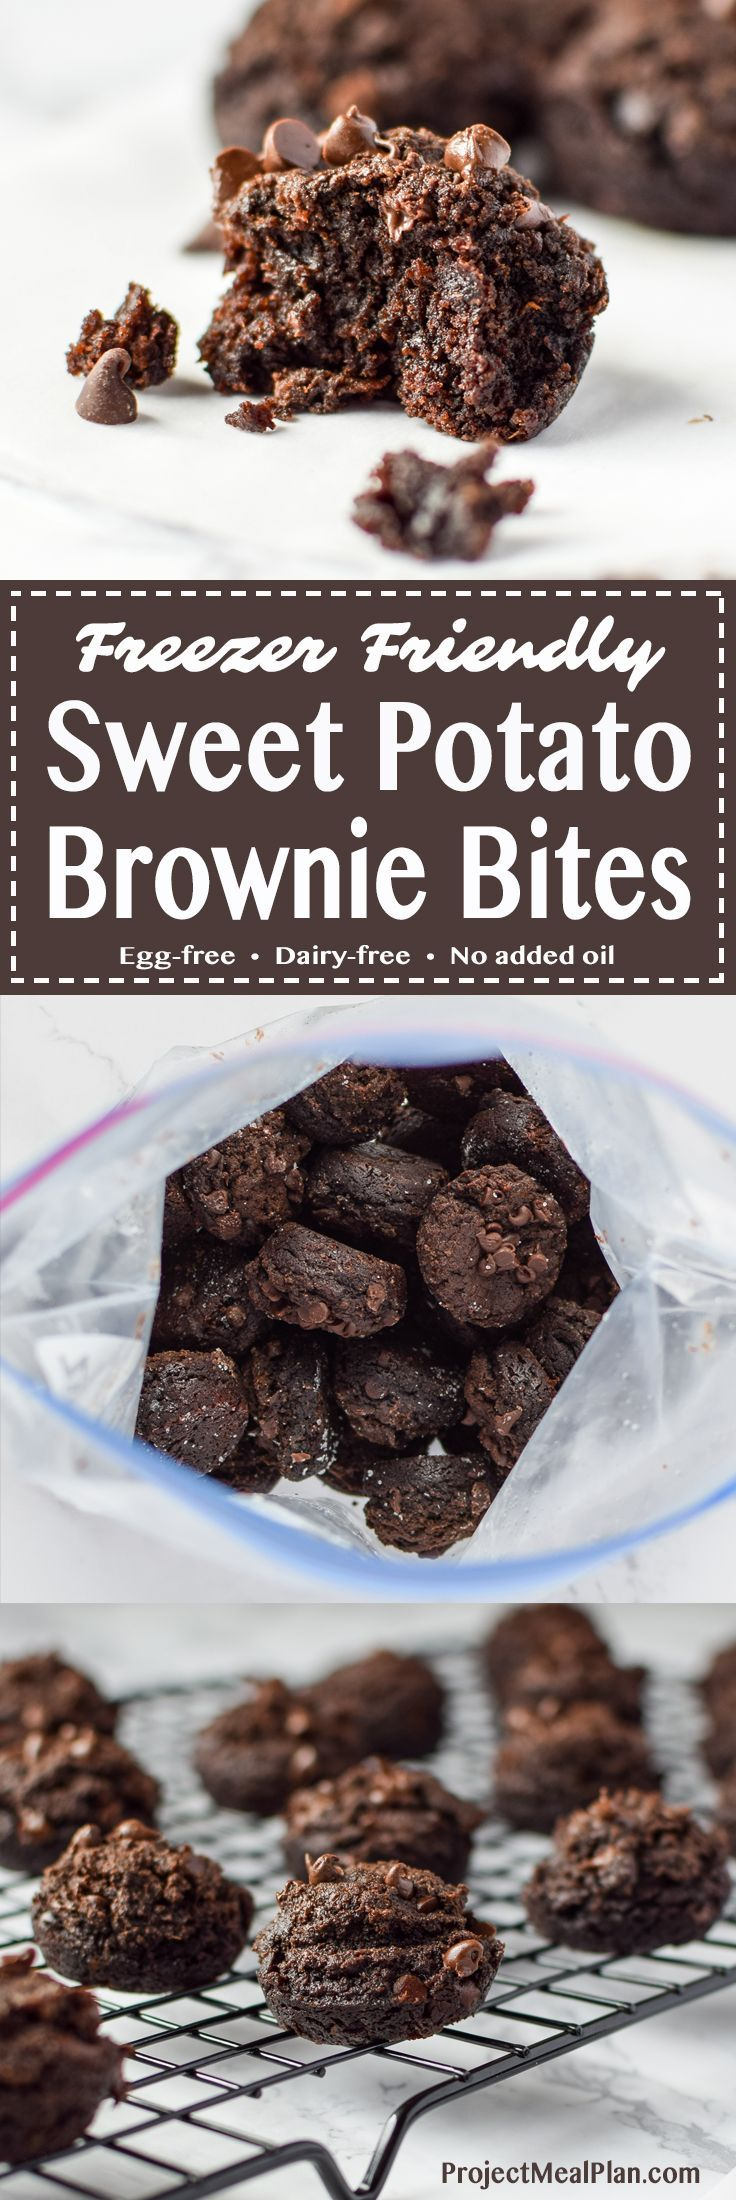 Friendly Sweet Potato Brownie Bites Freezer Friendly Sweet Potato Brownie Bites recipe - Sweet potato brownie bites are perfect to store in the freezer for your dessert cravings! Eggless + vegan options! - Freezer Friendly Sweet Potato Brownie Bites recipe - Sweet potato brownie bites are perfect to store in the freezer for your dessert cravings!...